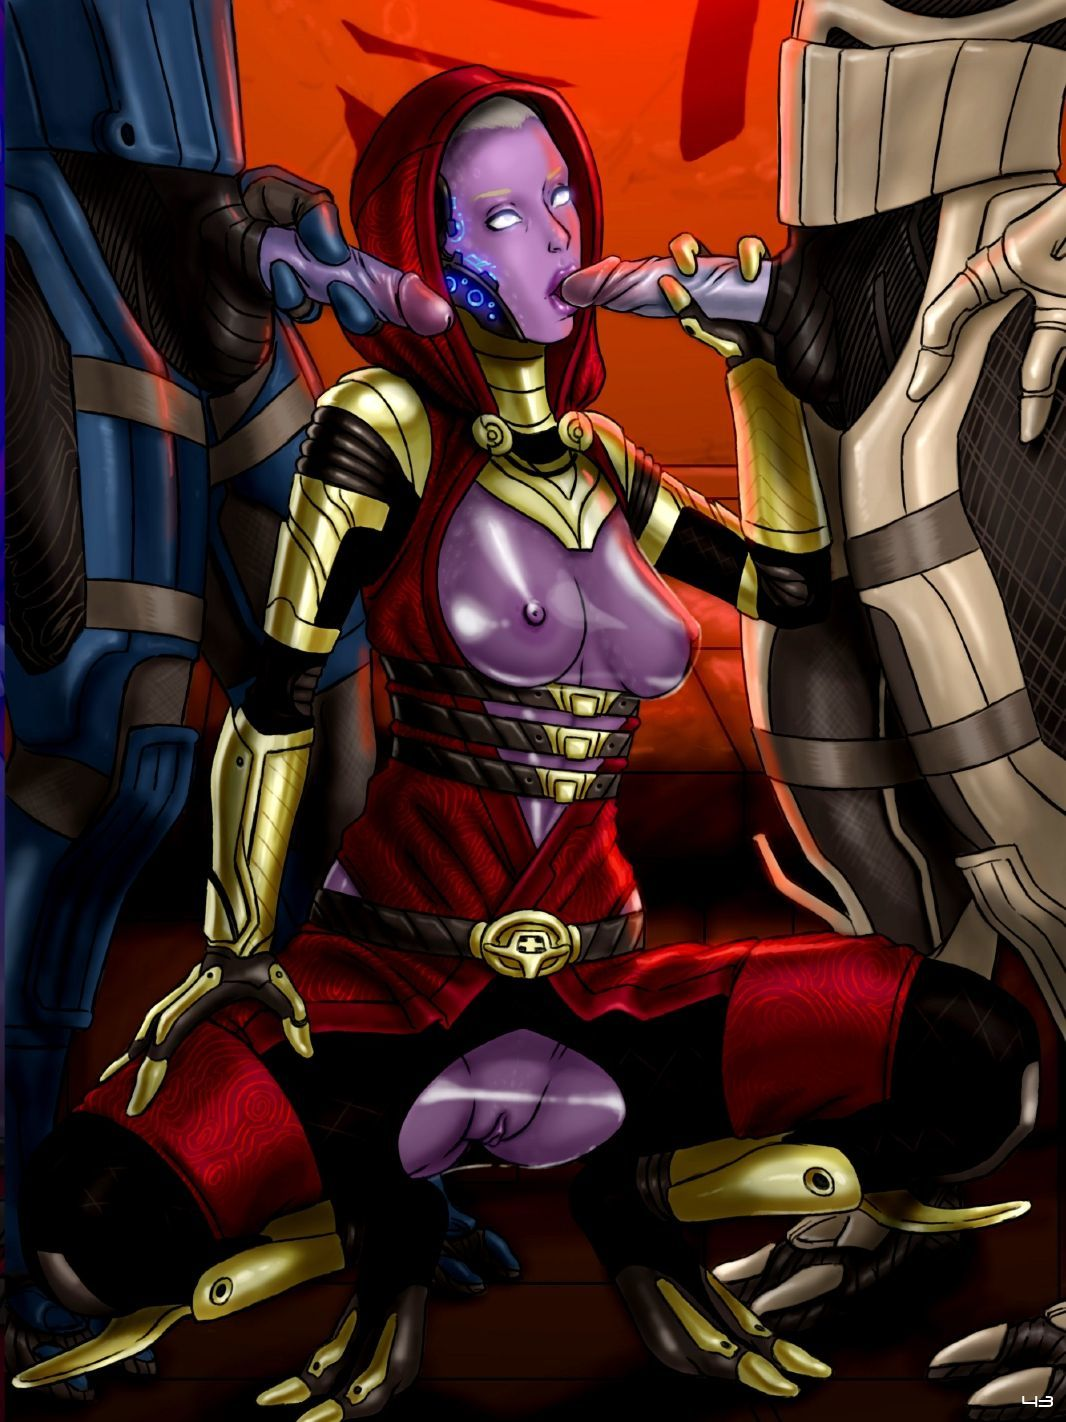 FORNAX_The_galaxys_finest_xenophilia_(Mass_Effect) comix_58059.jpg